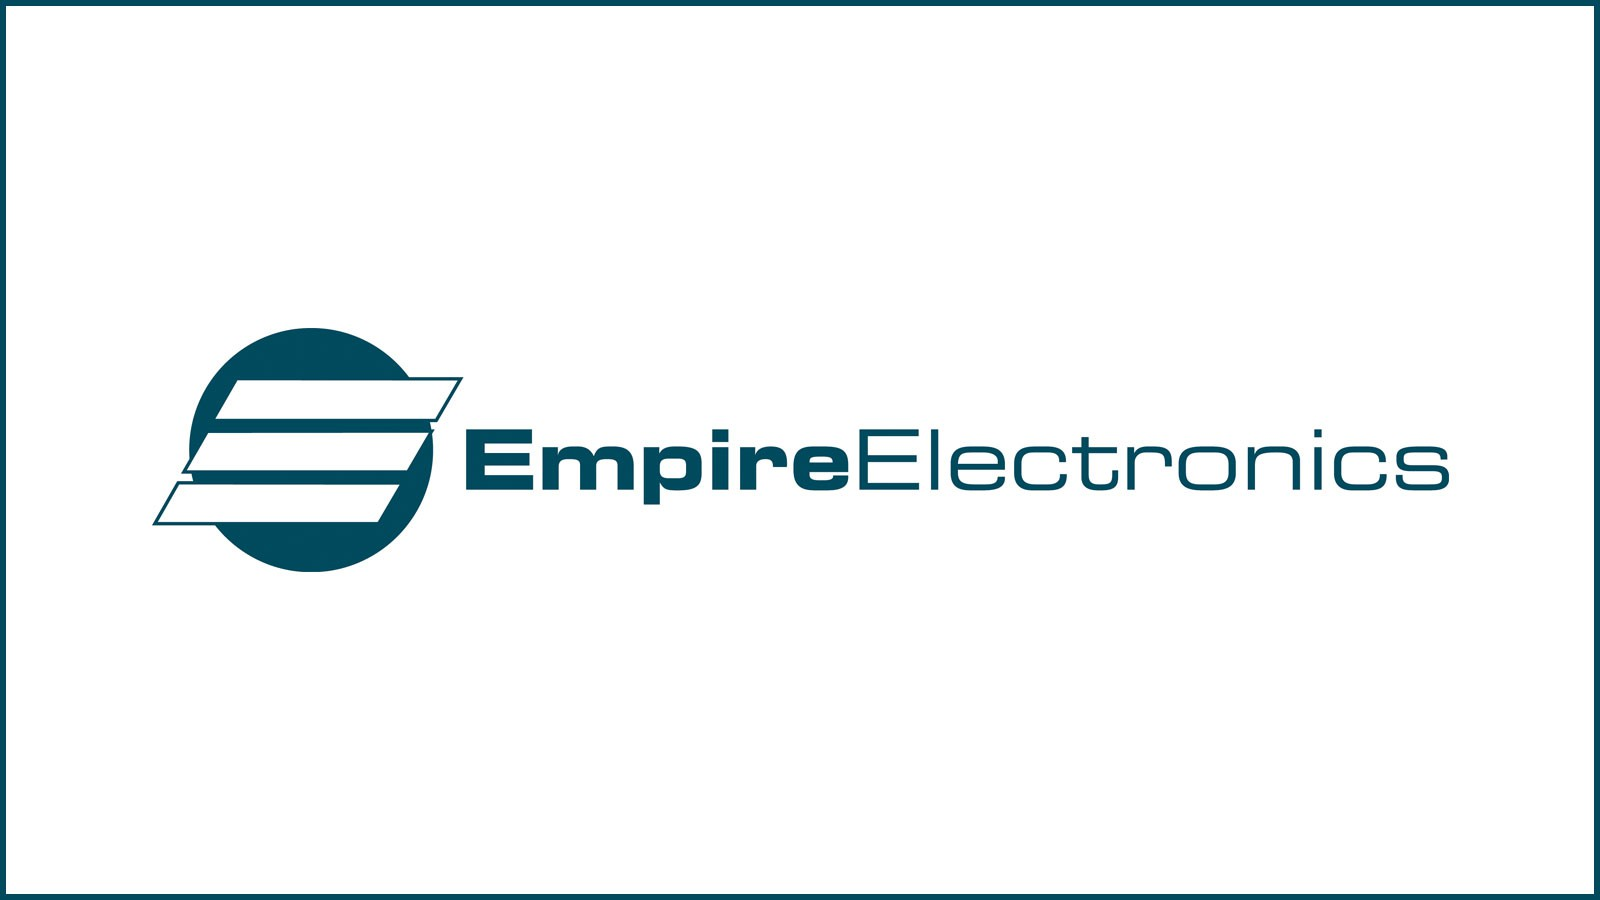 Empire Electronics logo